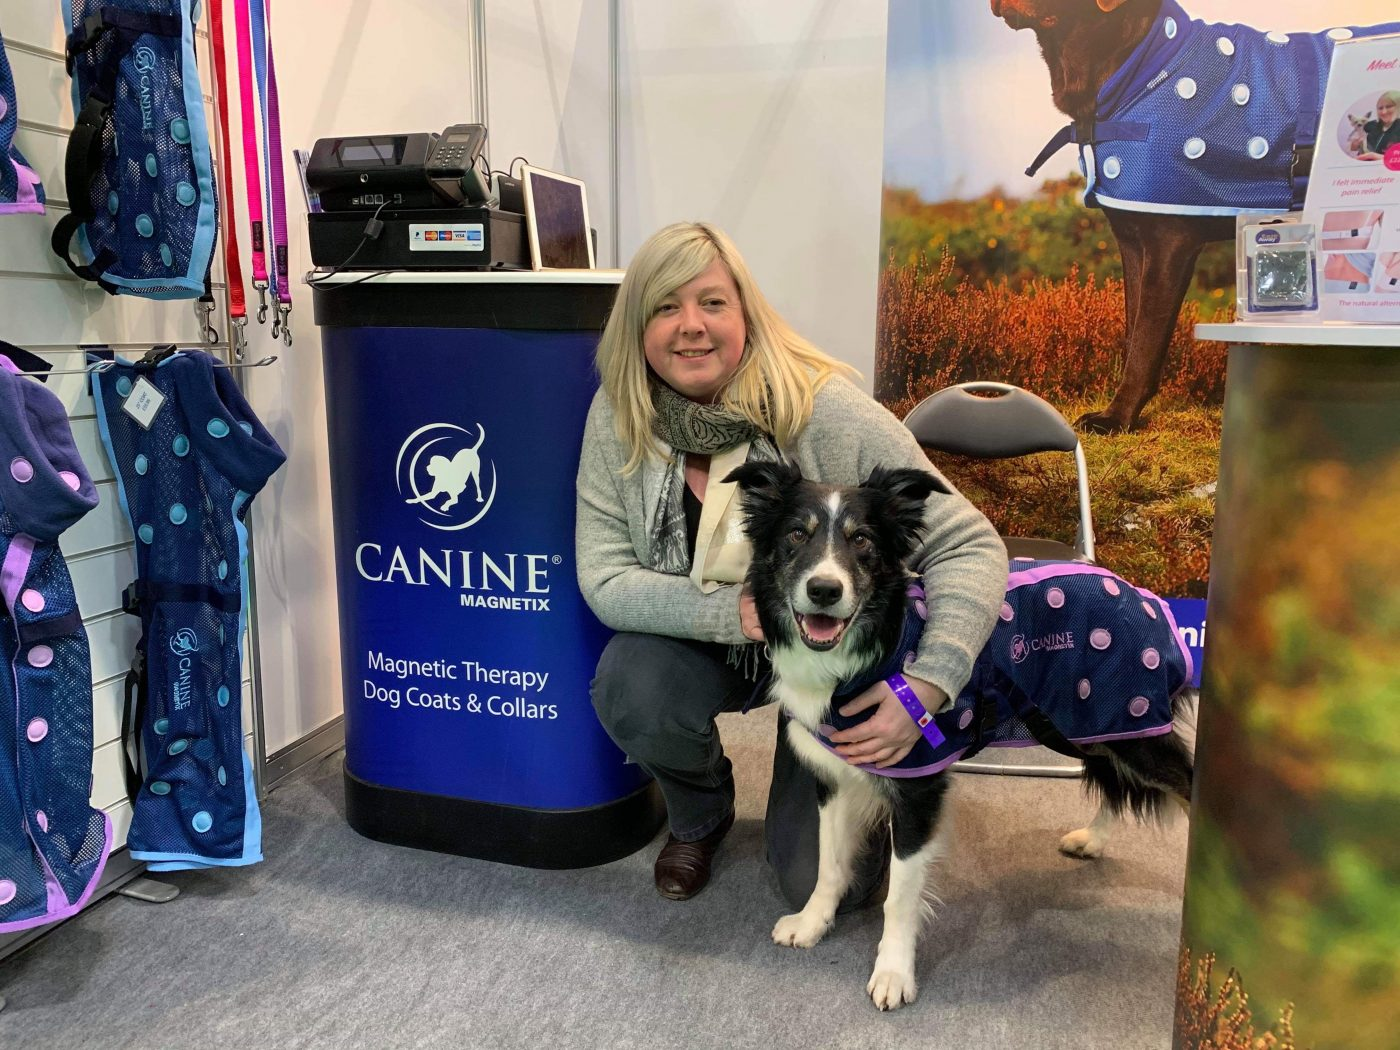 Crufts 2019 - Sam and Zac